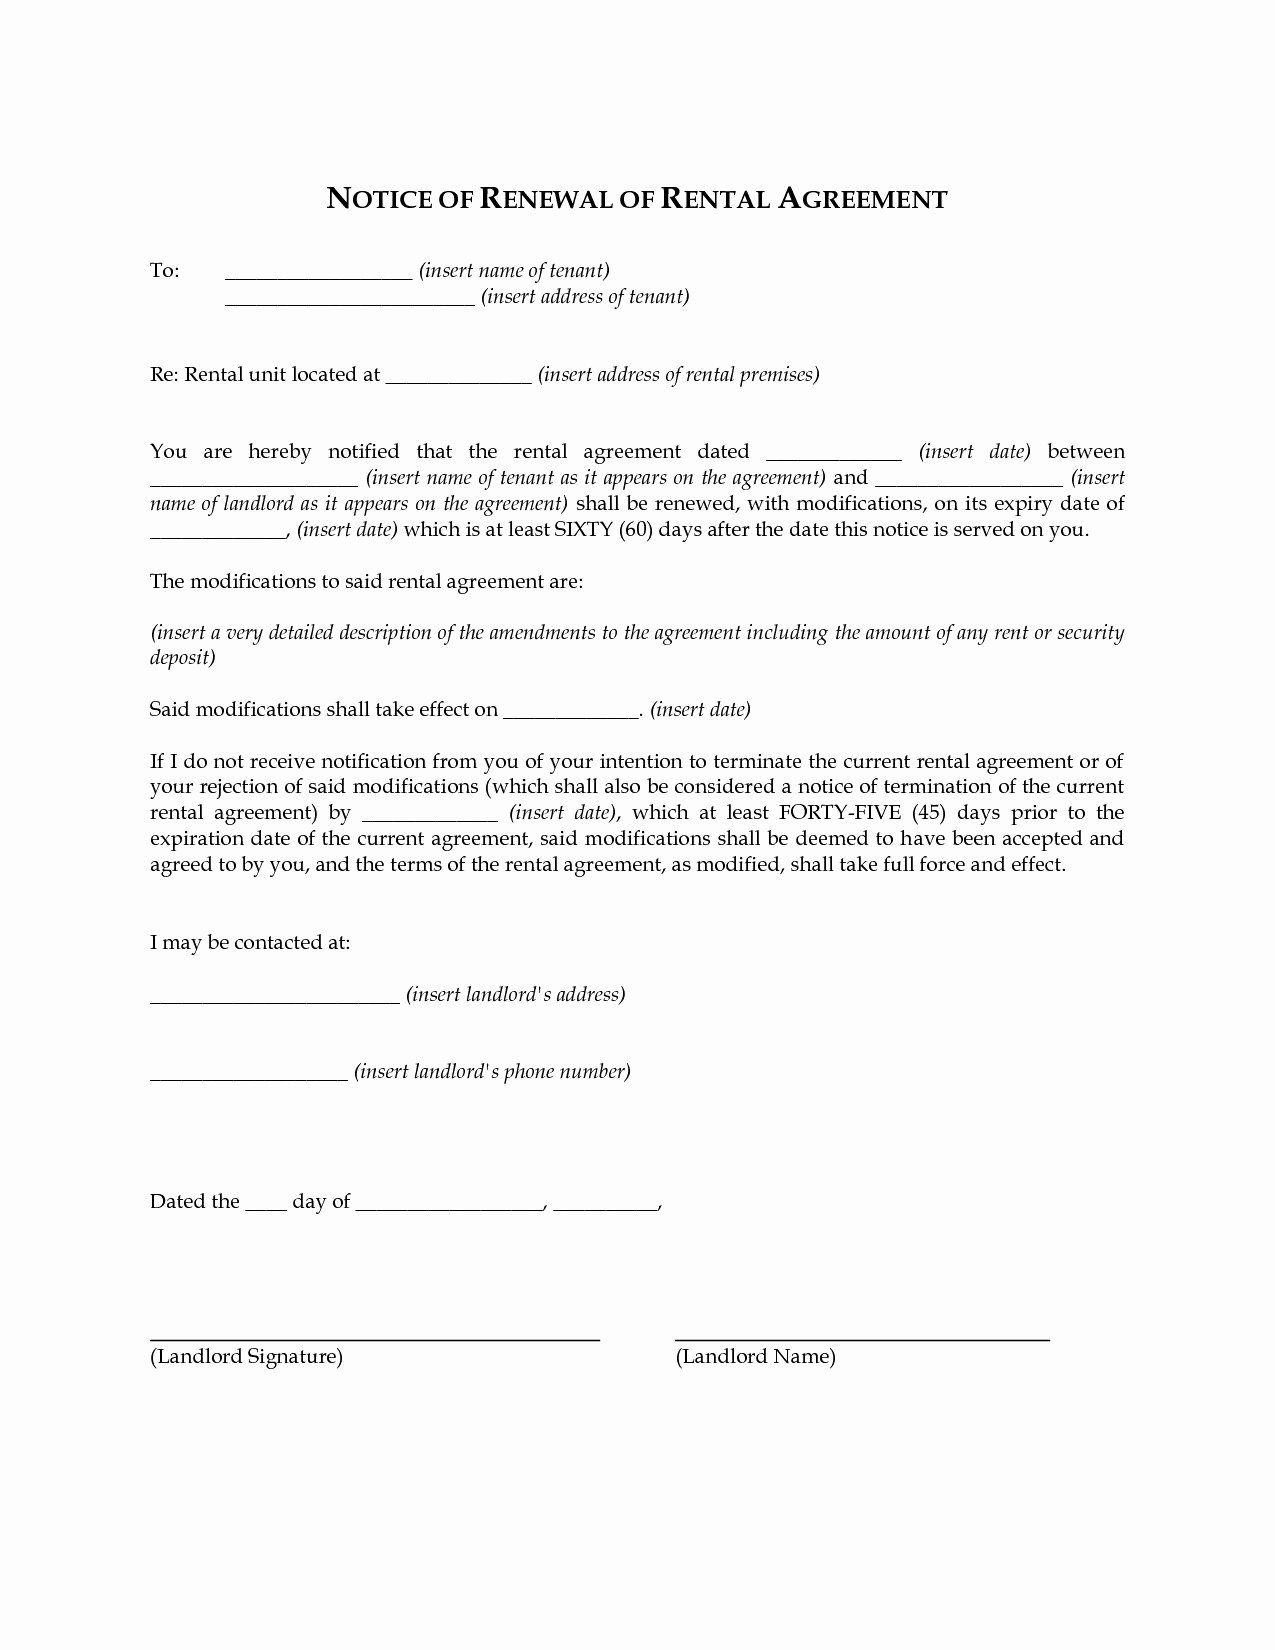 Letter Of Intent Lease Template Inspirational New Letter Intent To Renew Lease Template Printable Letter Templates Lettering Letter Of Intent